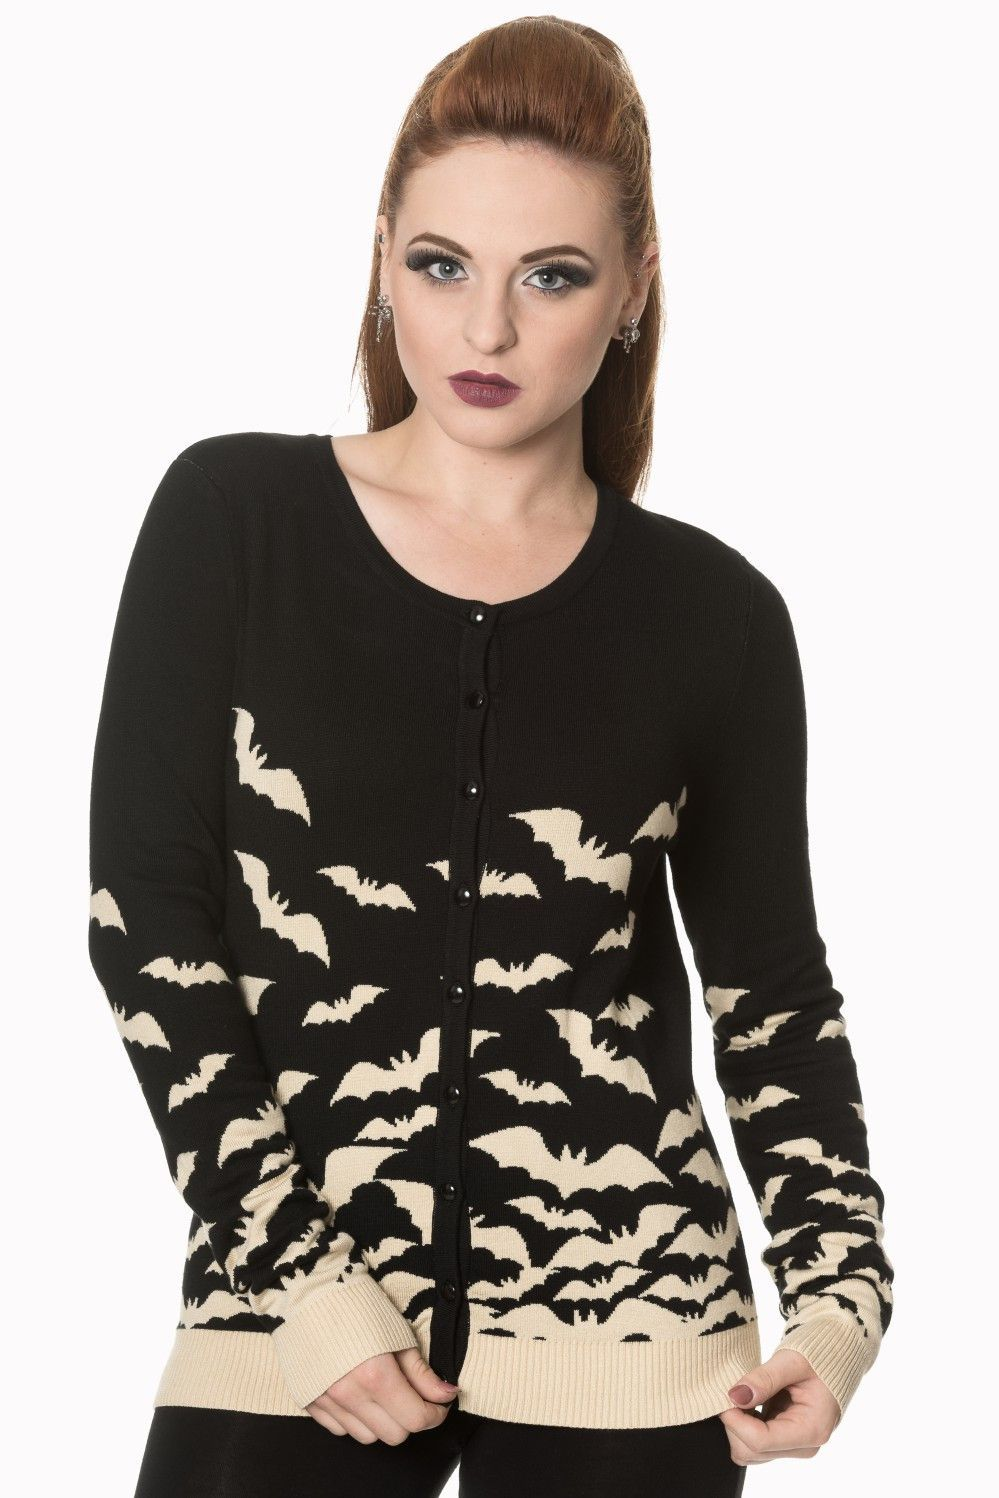 Flying bats Knit sweater Cardigan | Bats and Ivory